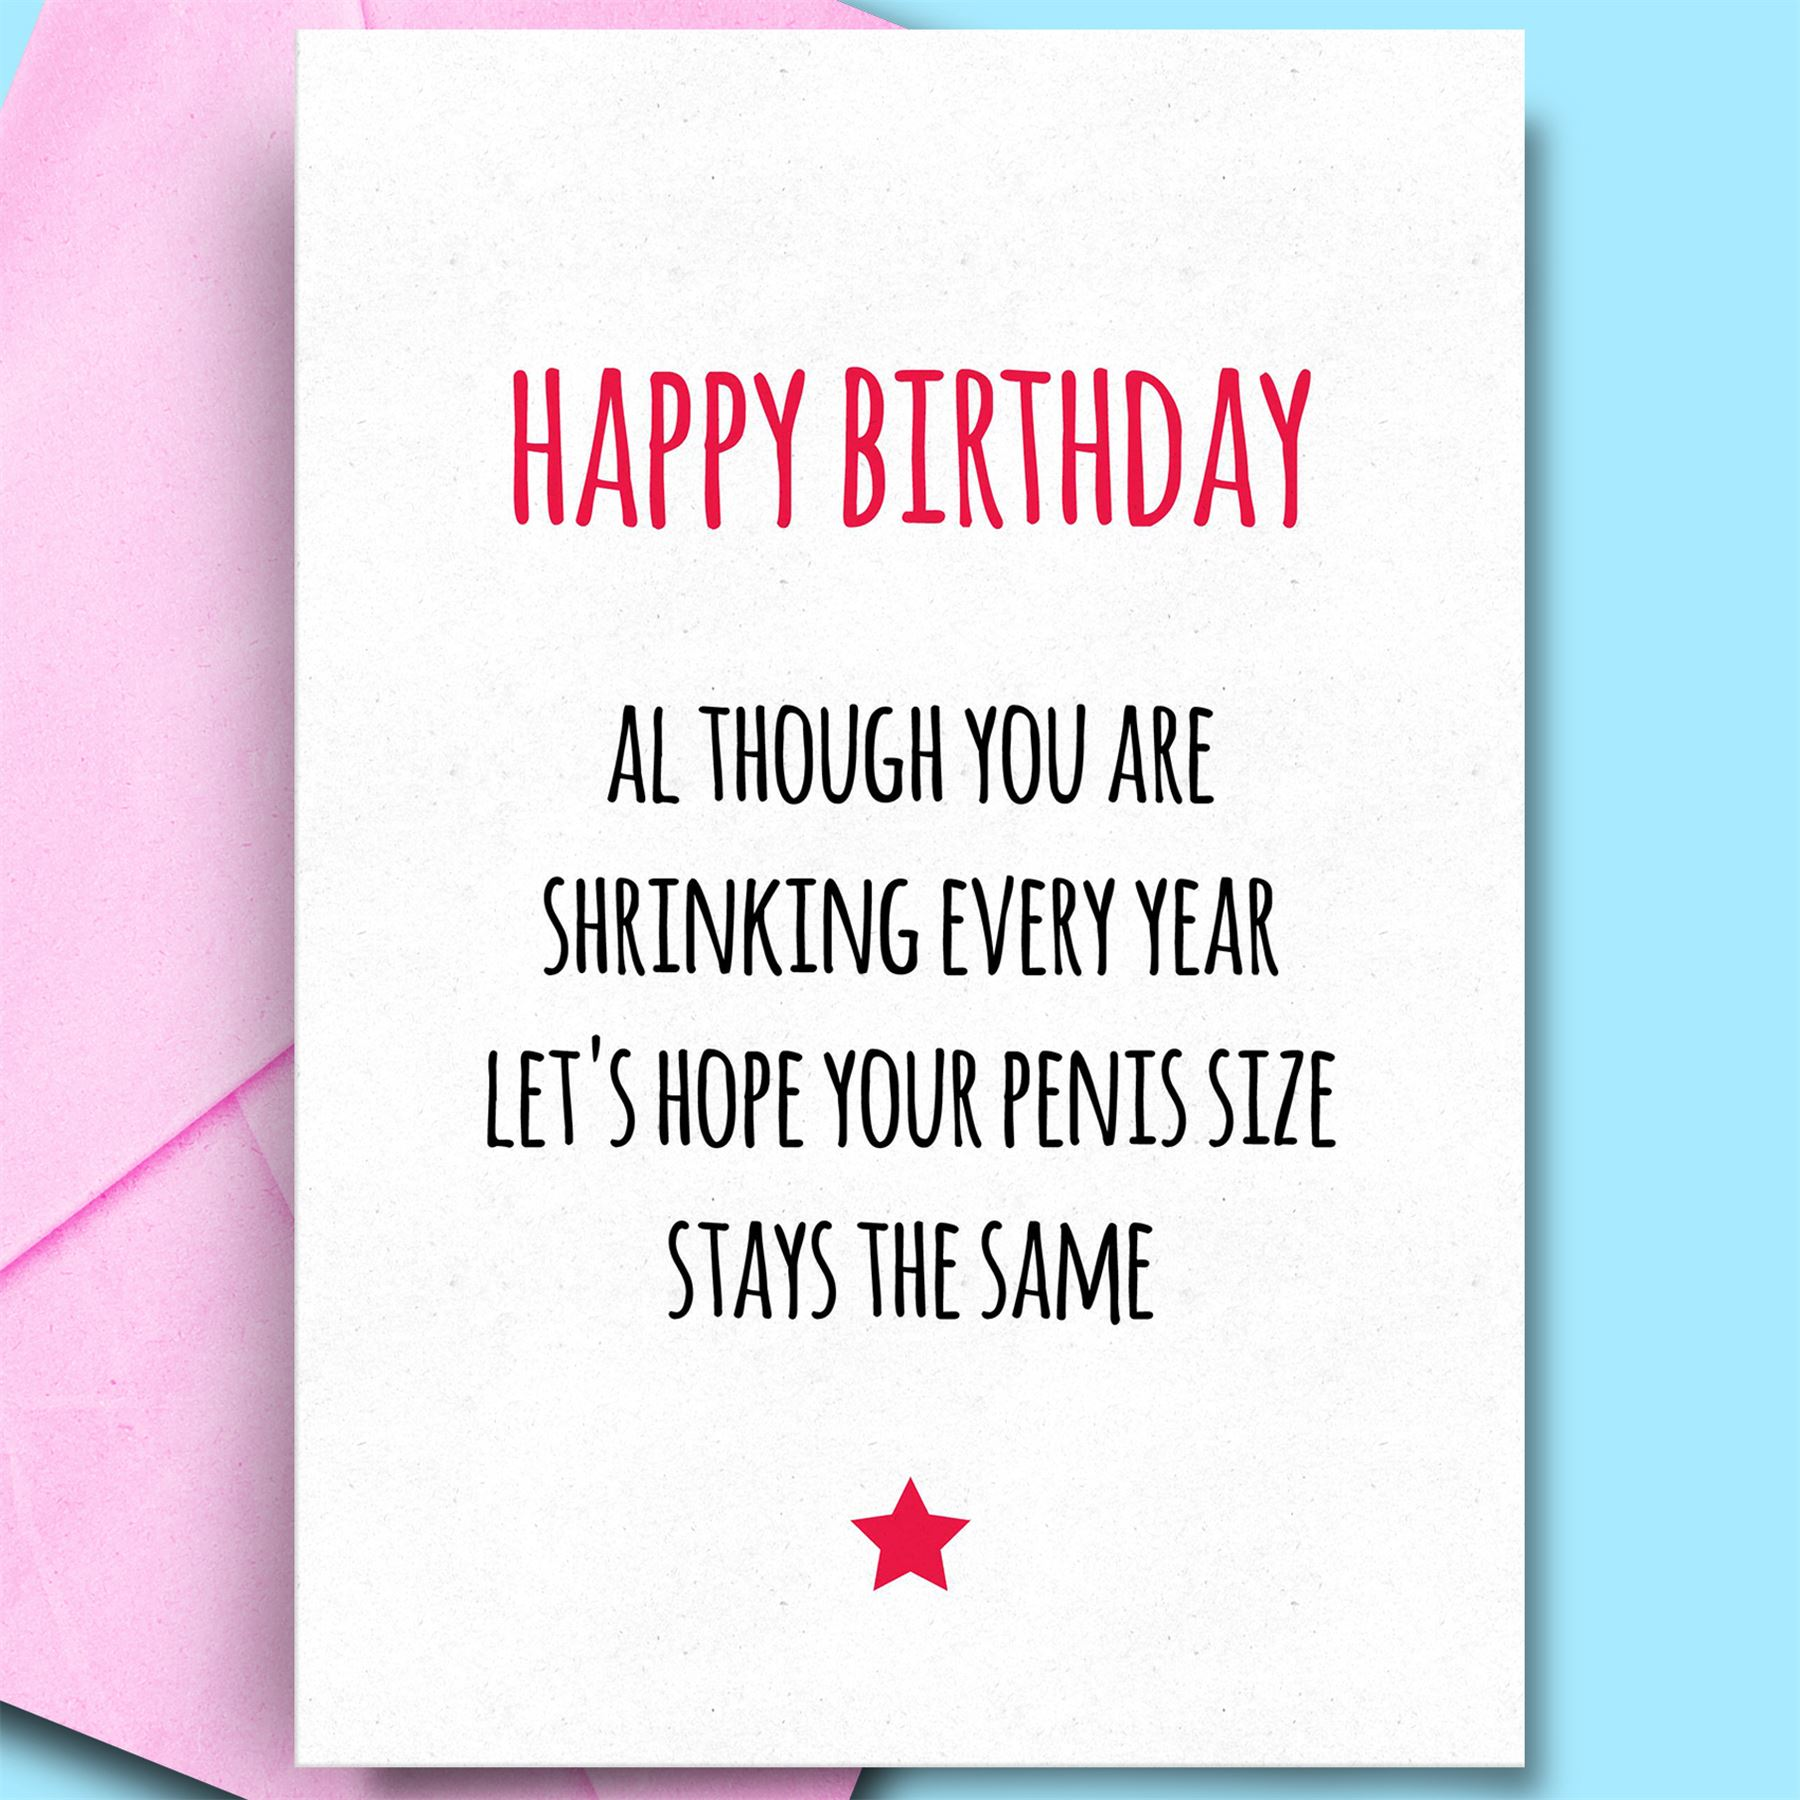 Details about Birthday Card For Husband Adult Fun Funny Cards For Fiance  Partner Hubby